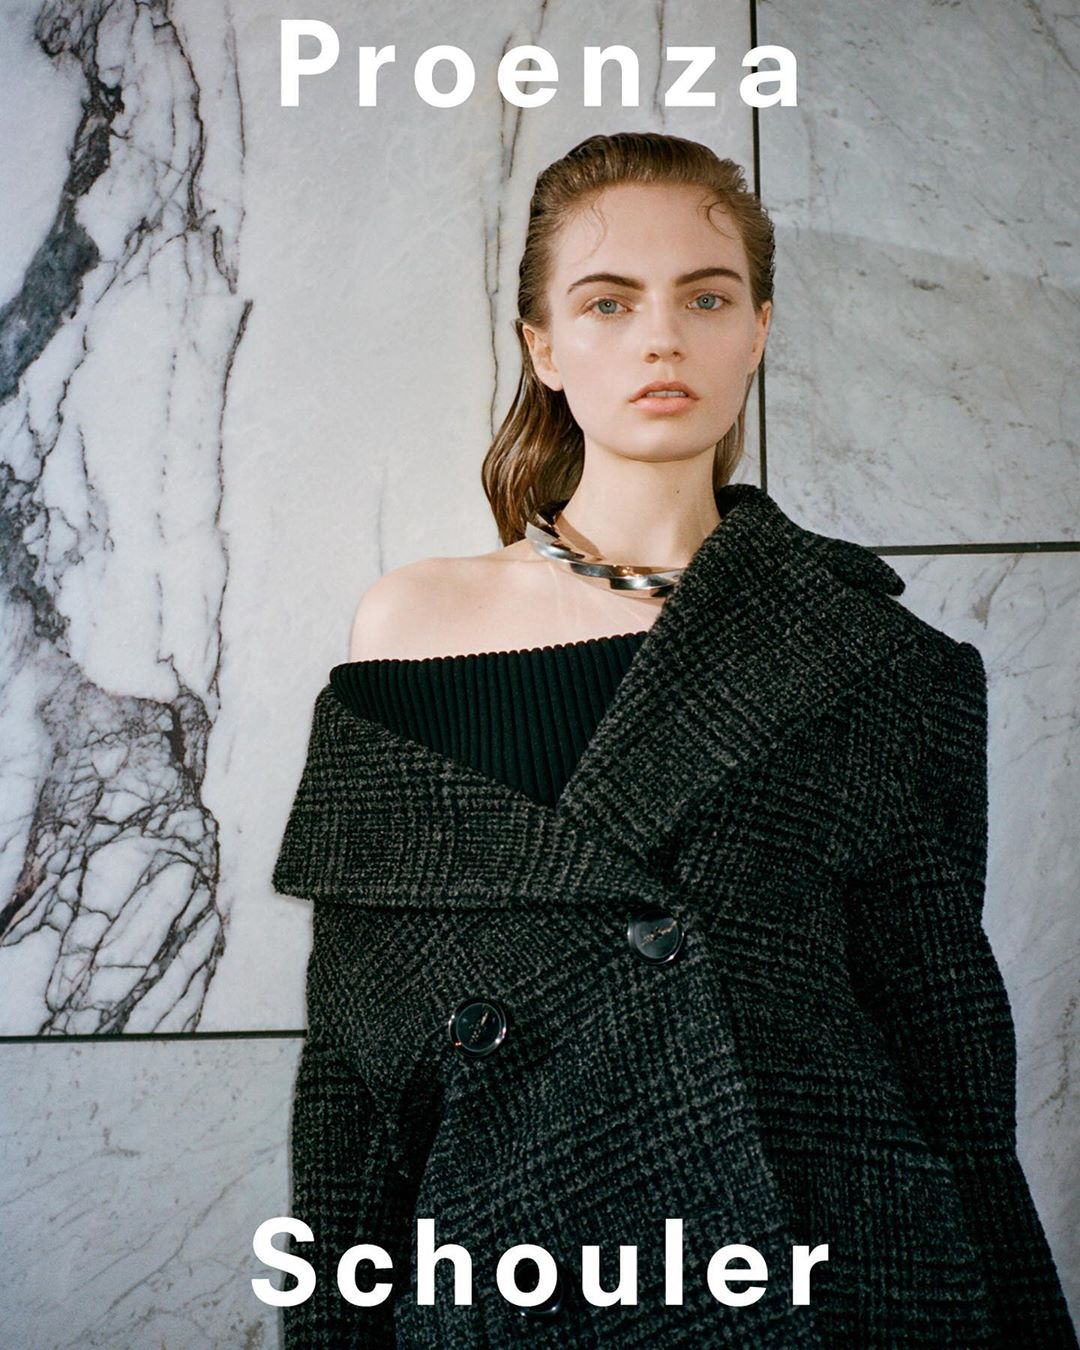 Proenza Schouler Fall 2020 Ad Campaign Film & Photos